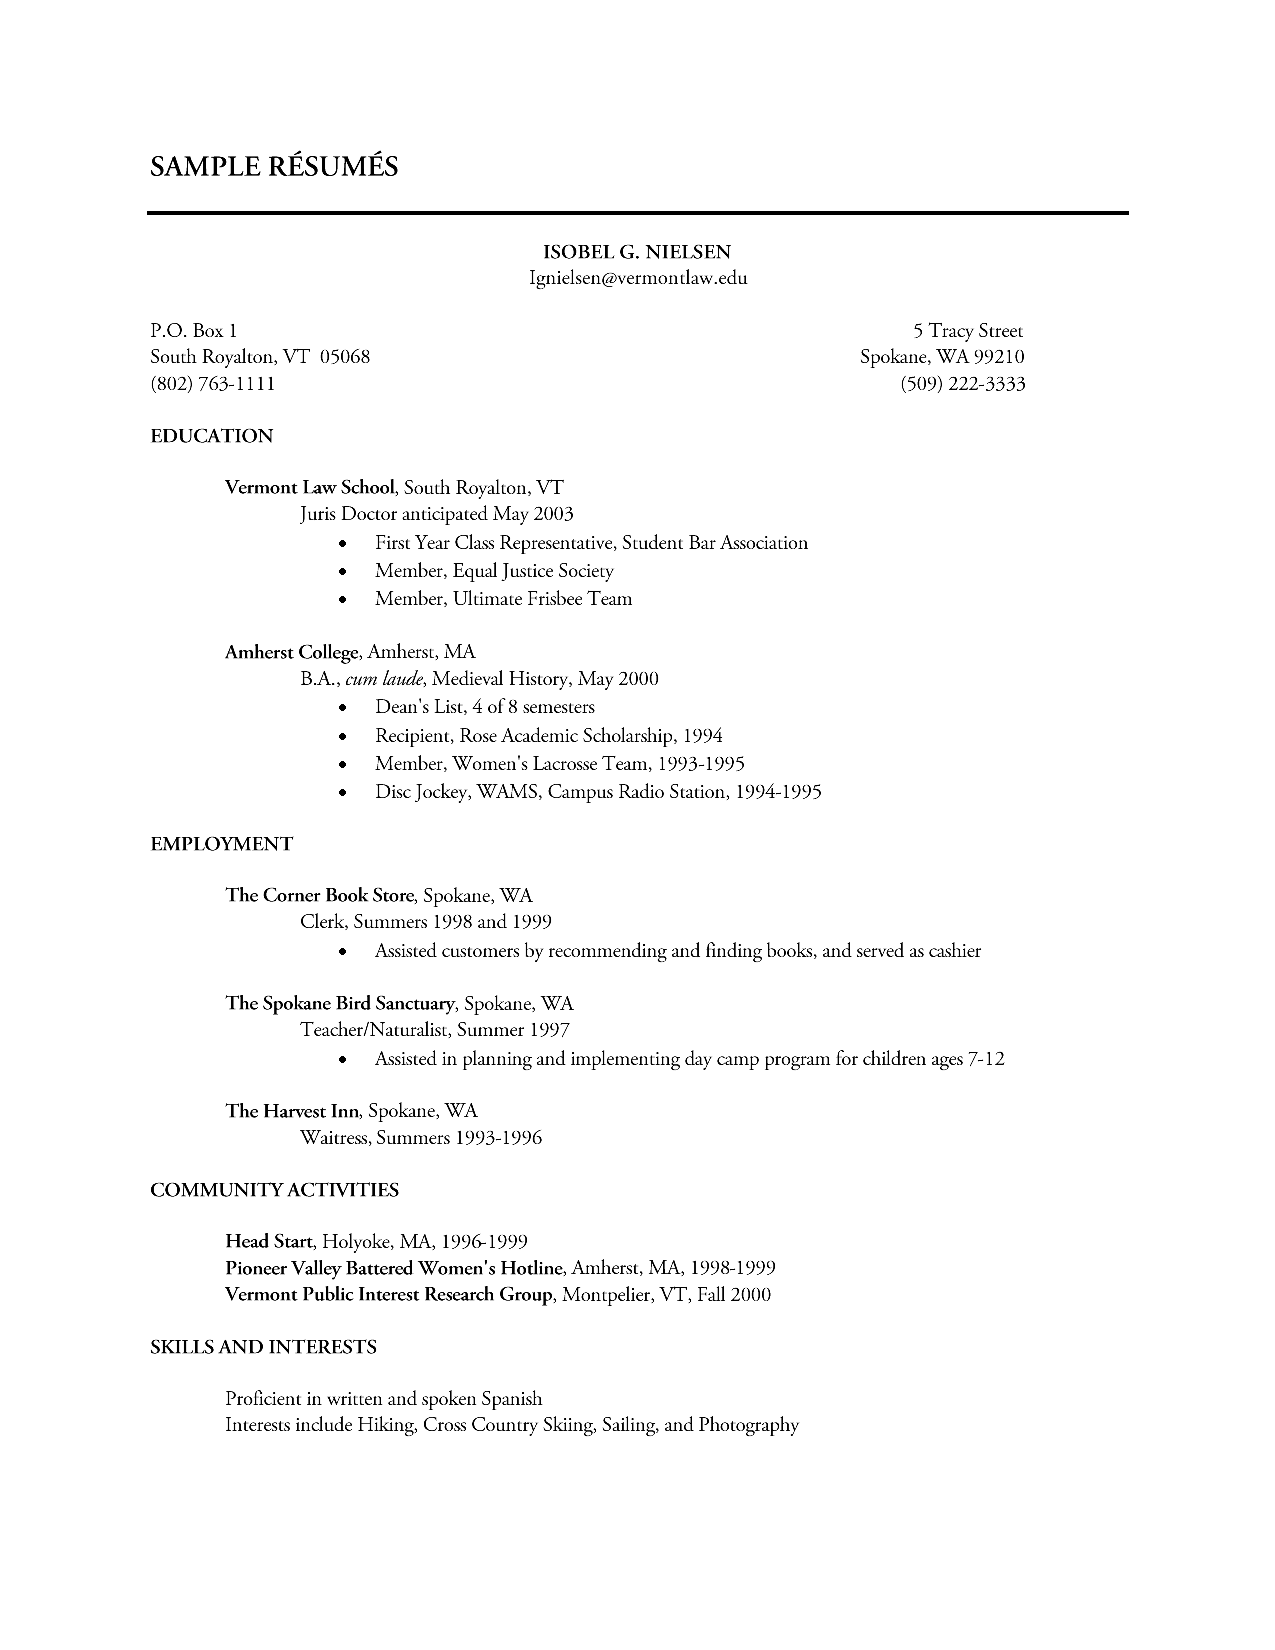 ability summary resume examples free sample resume cover ofjytxip resume examples templates restaurant waitress skills general - Resume For Waitress Skills